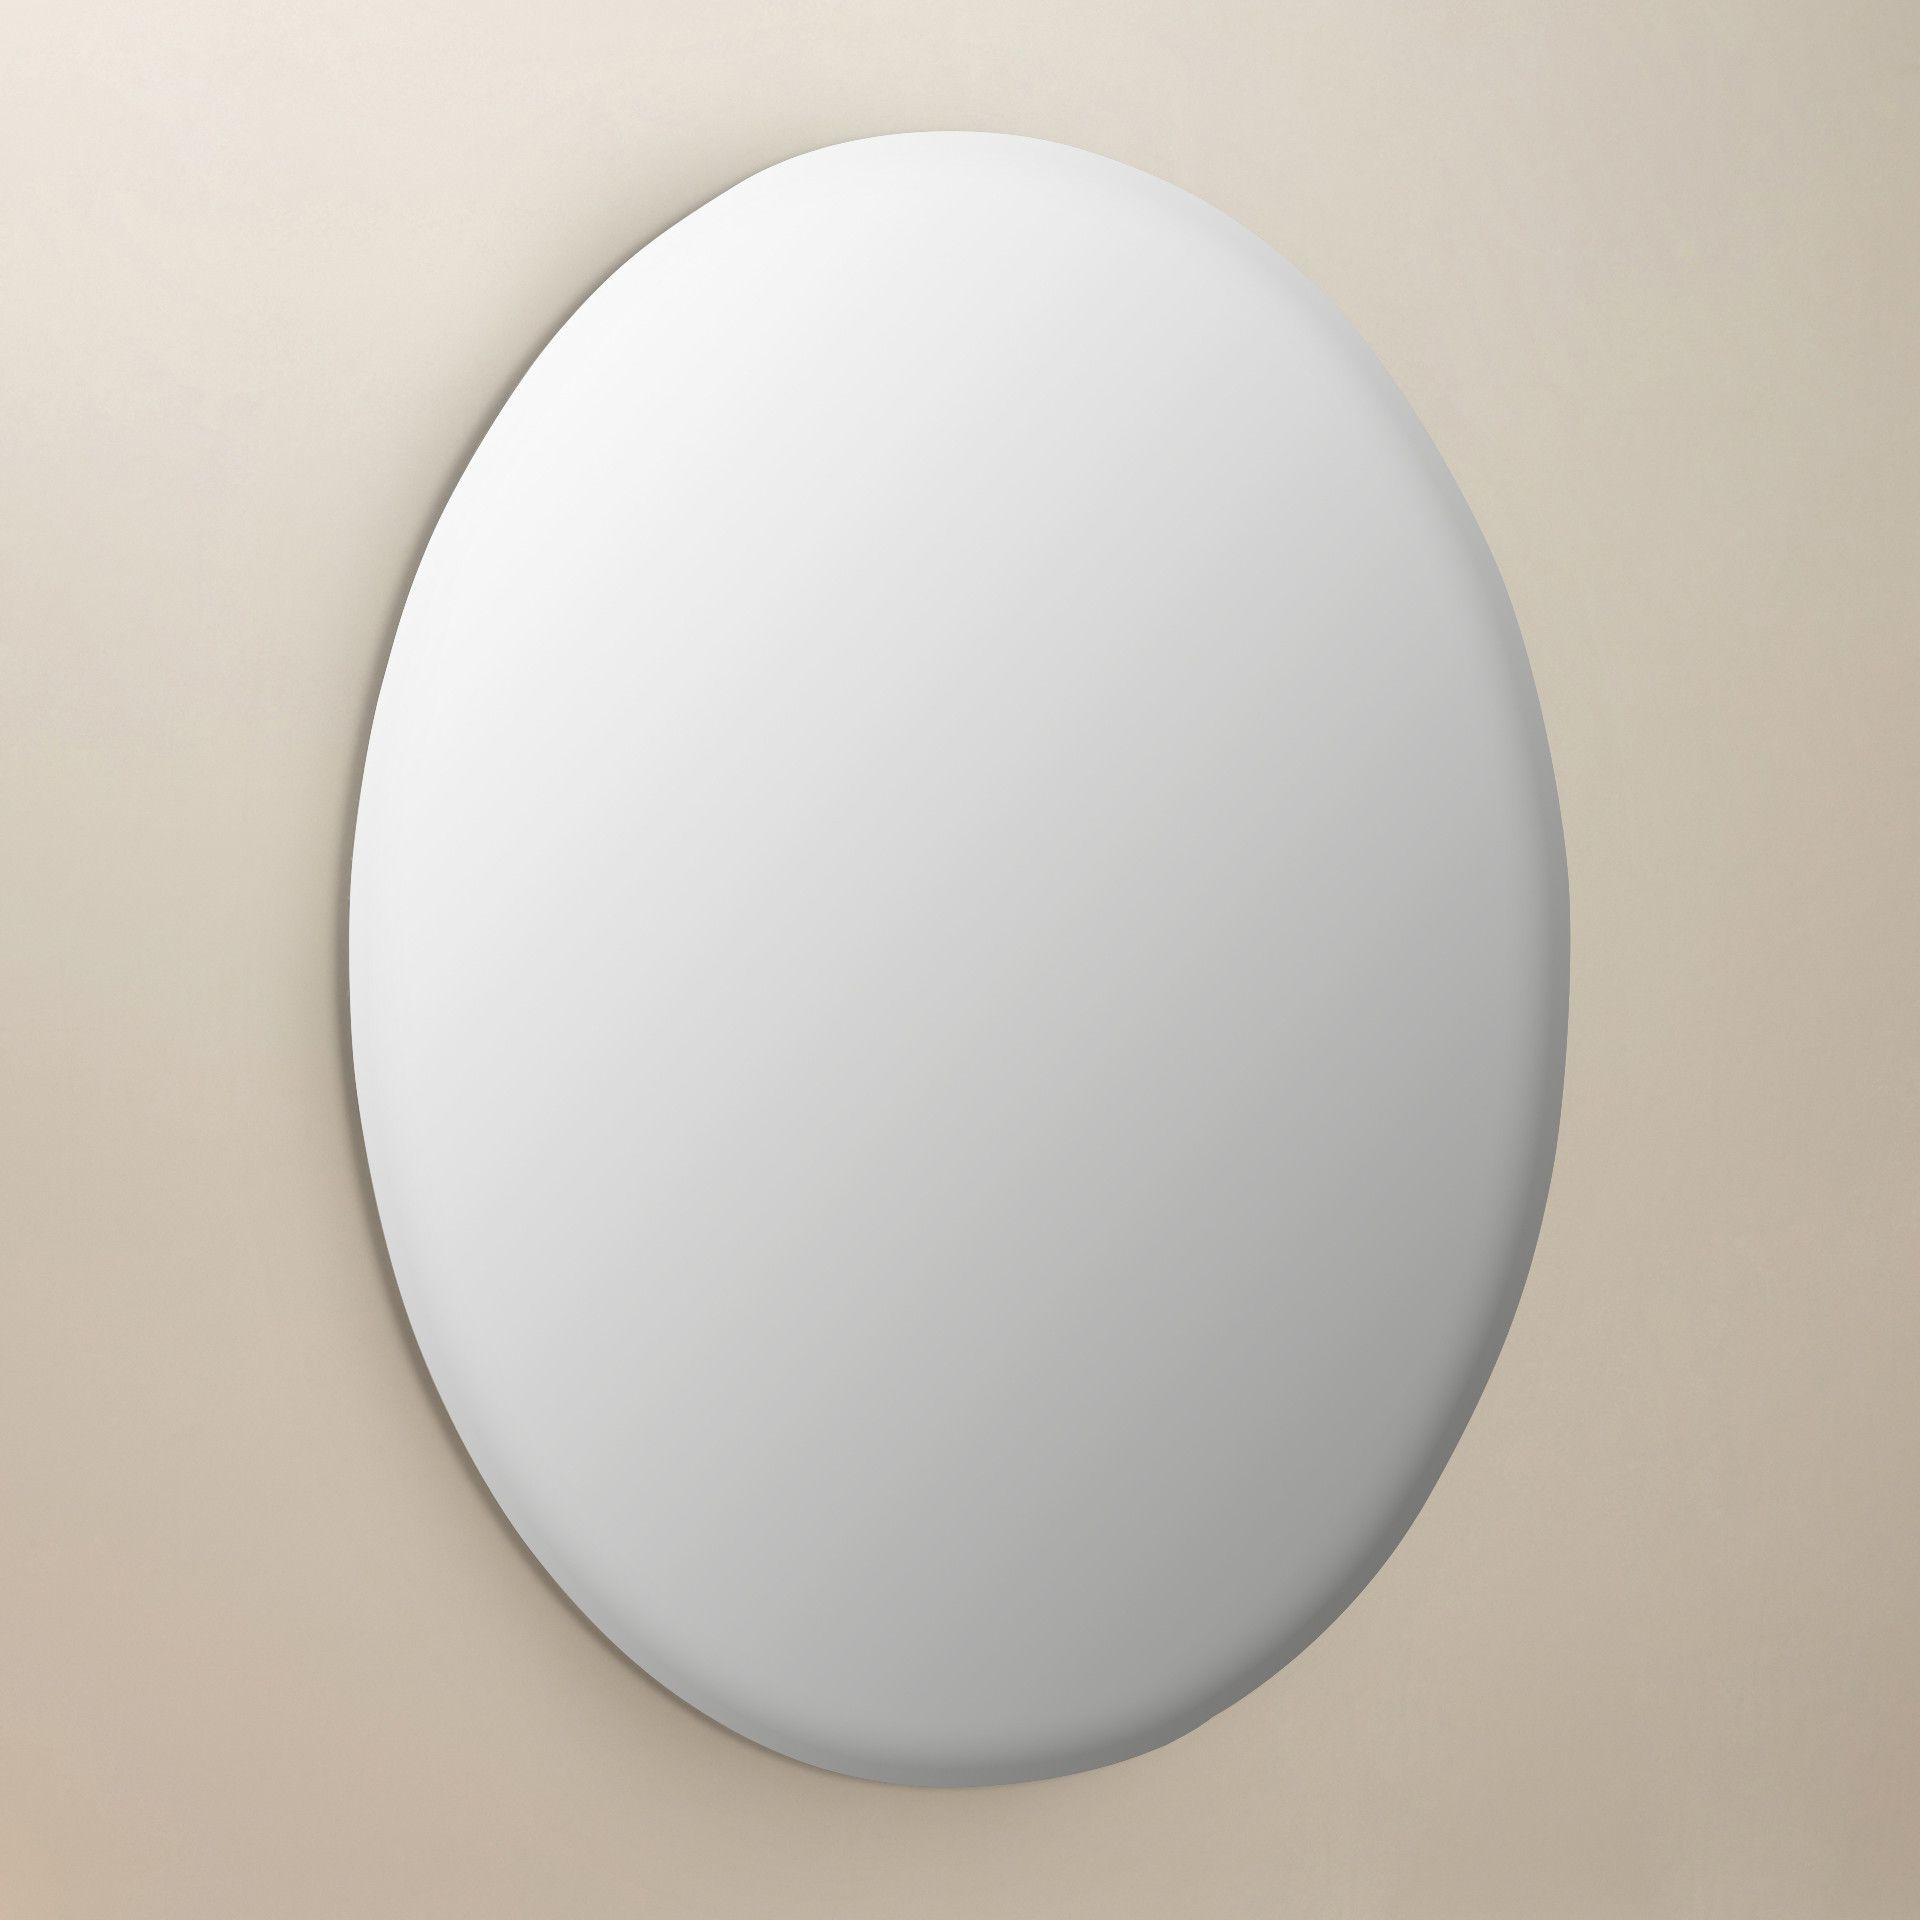 Gaunts Earthcott Wall Mirrors Throughout 2019 7 Unbelievable Tips Can Change Your Life: Oversized Wall Mirror (View 4 of 20)